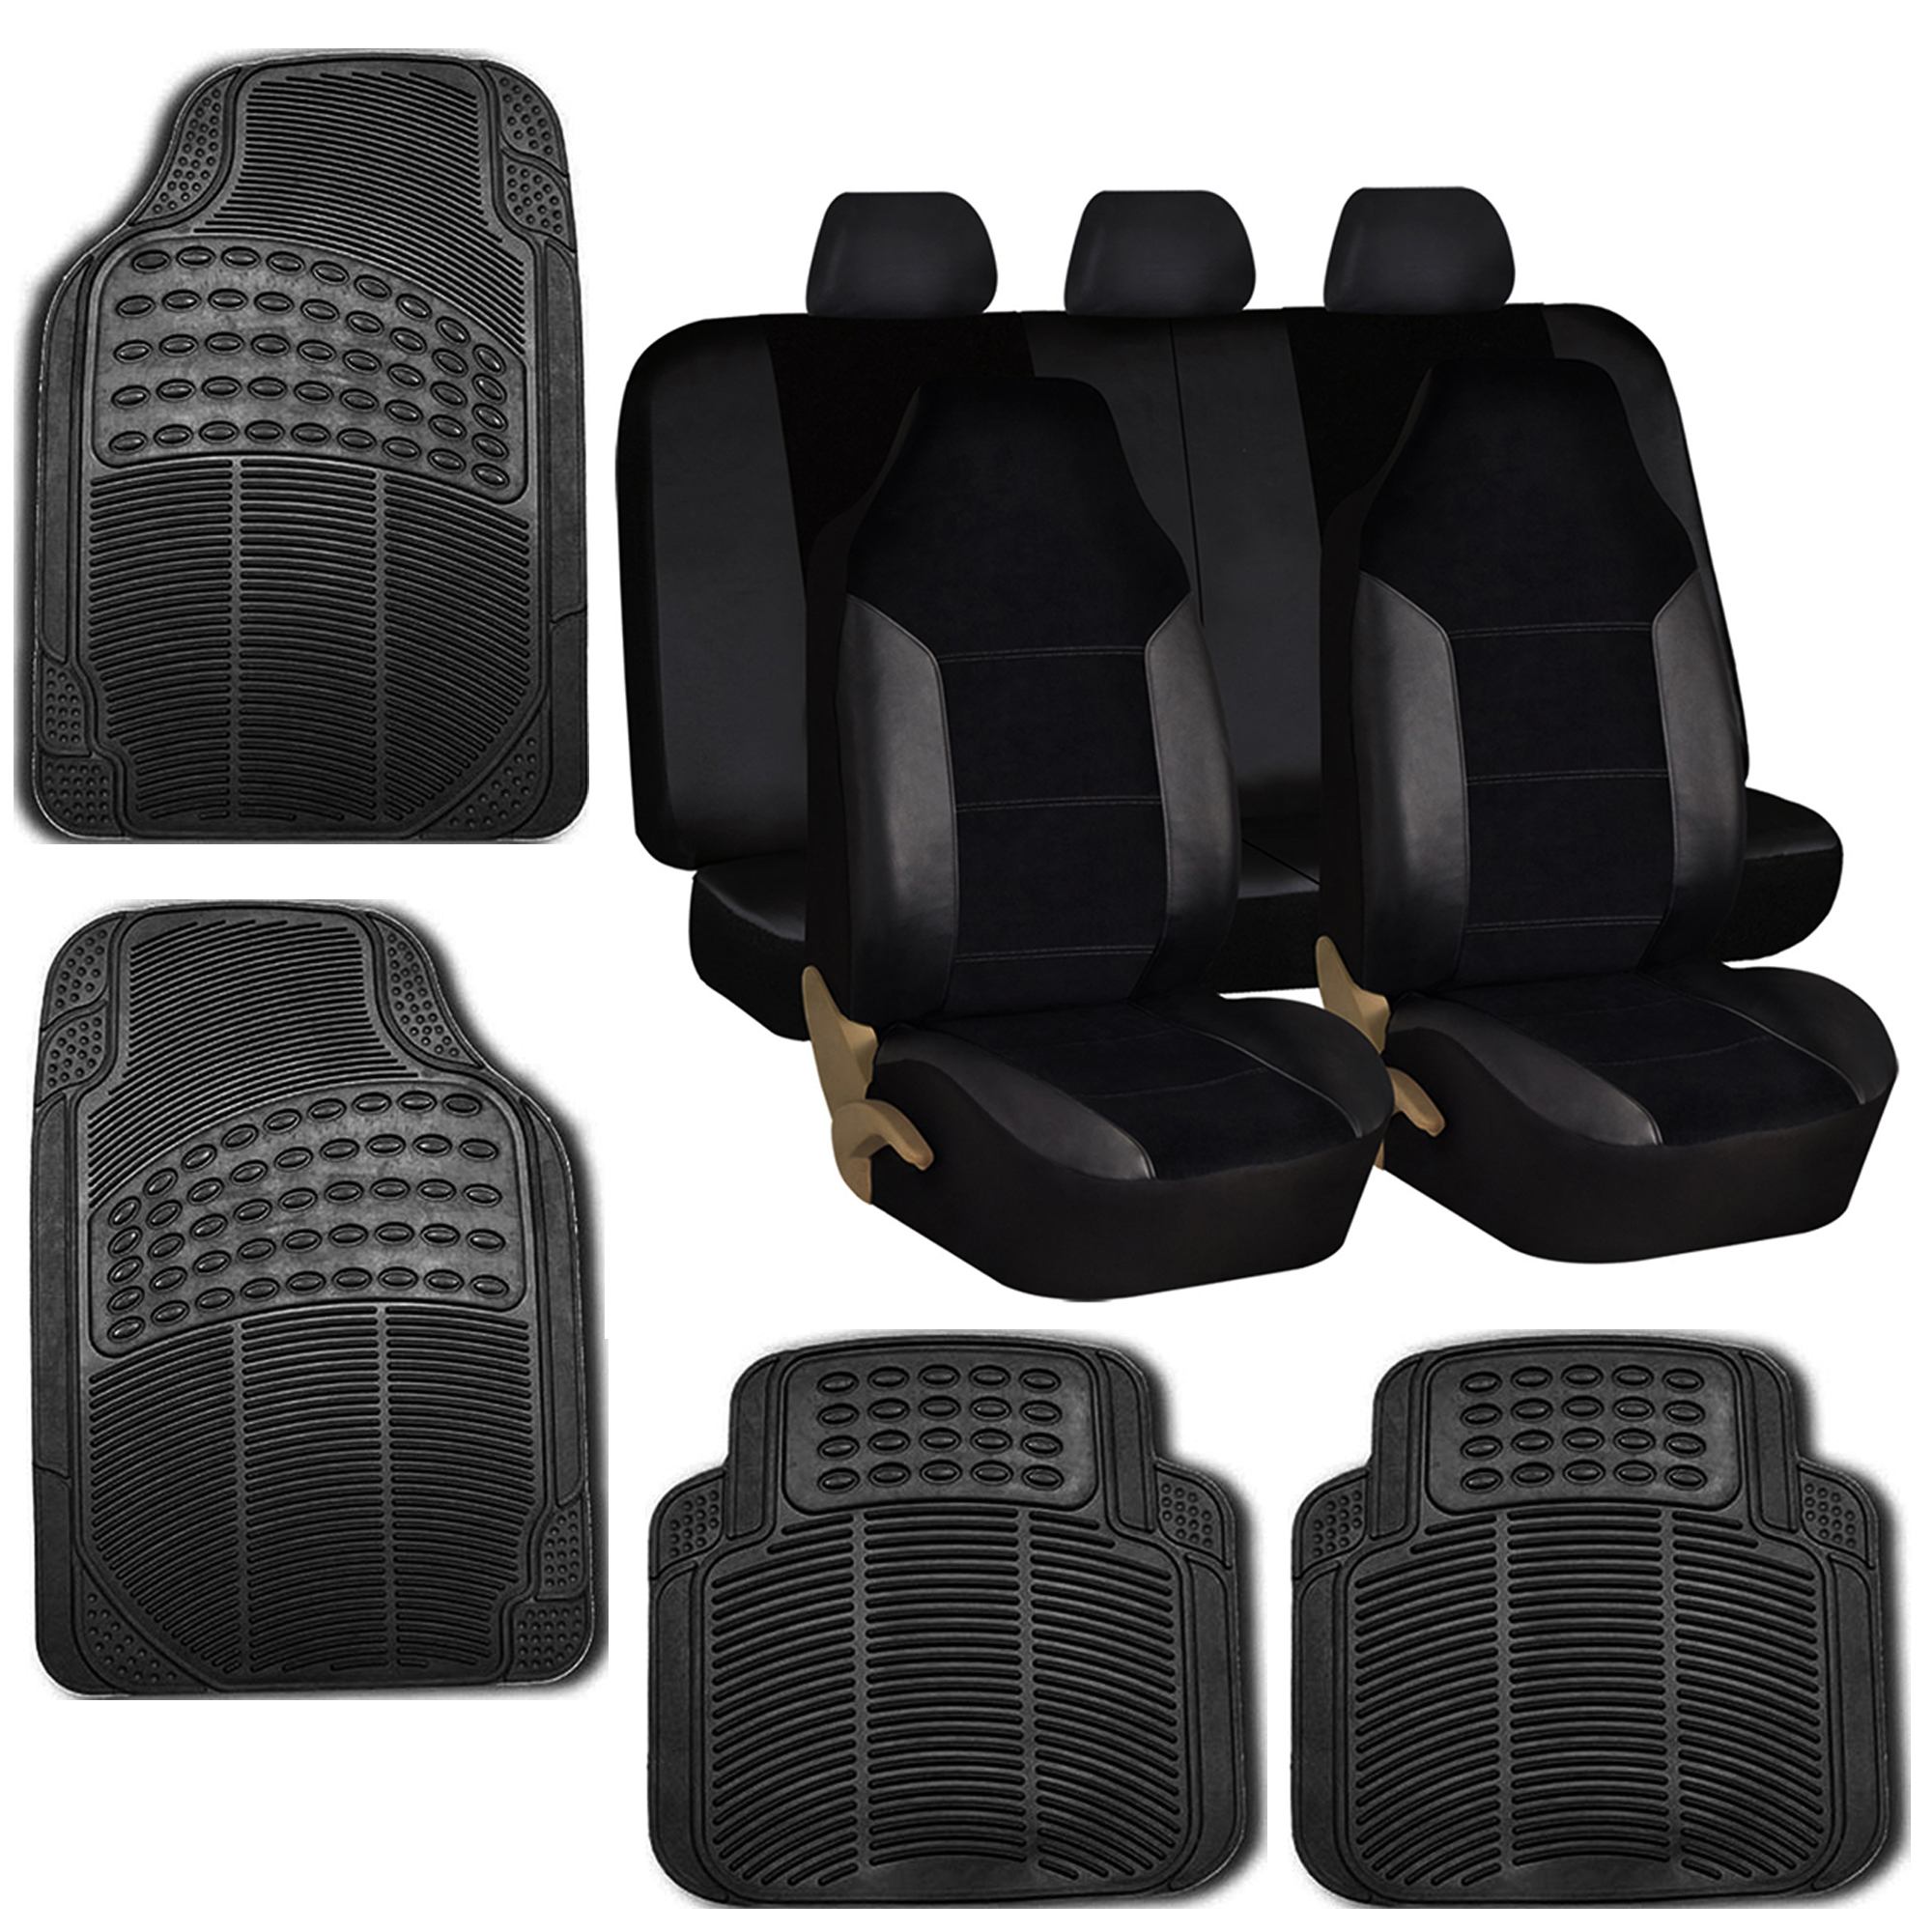 car seat covers set for auto w floor mat black for sale. Black Bedroom Furniture Sets. Home Design Ideas